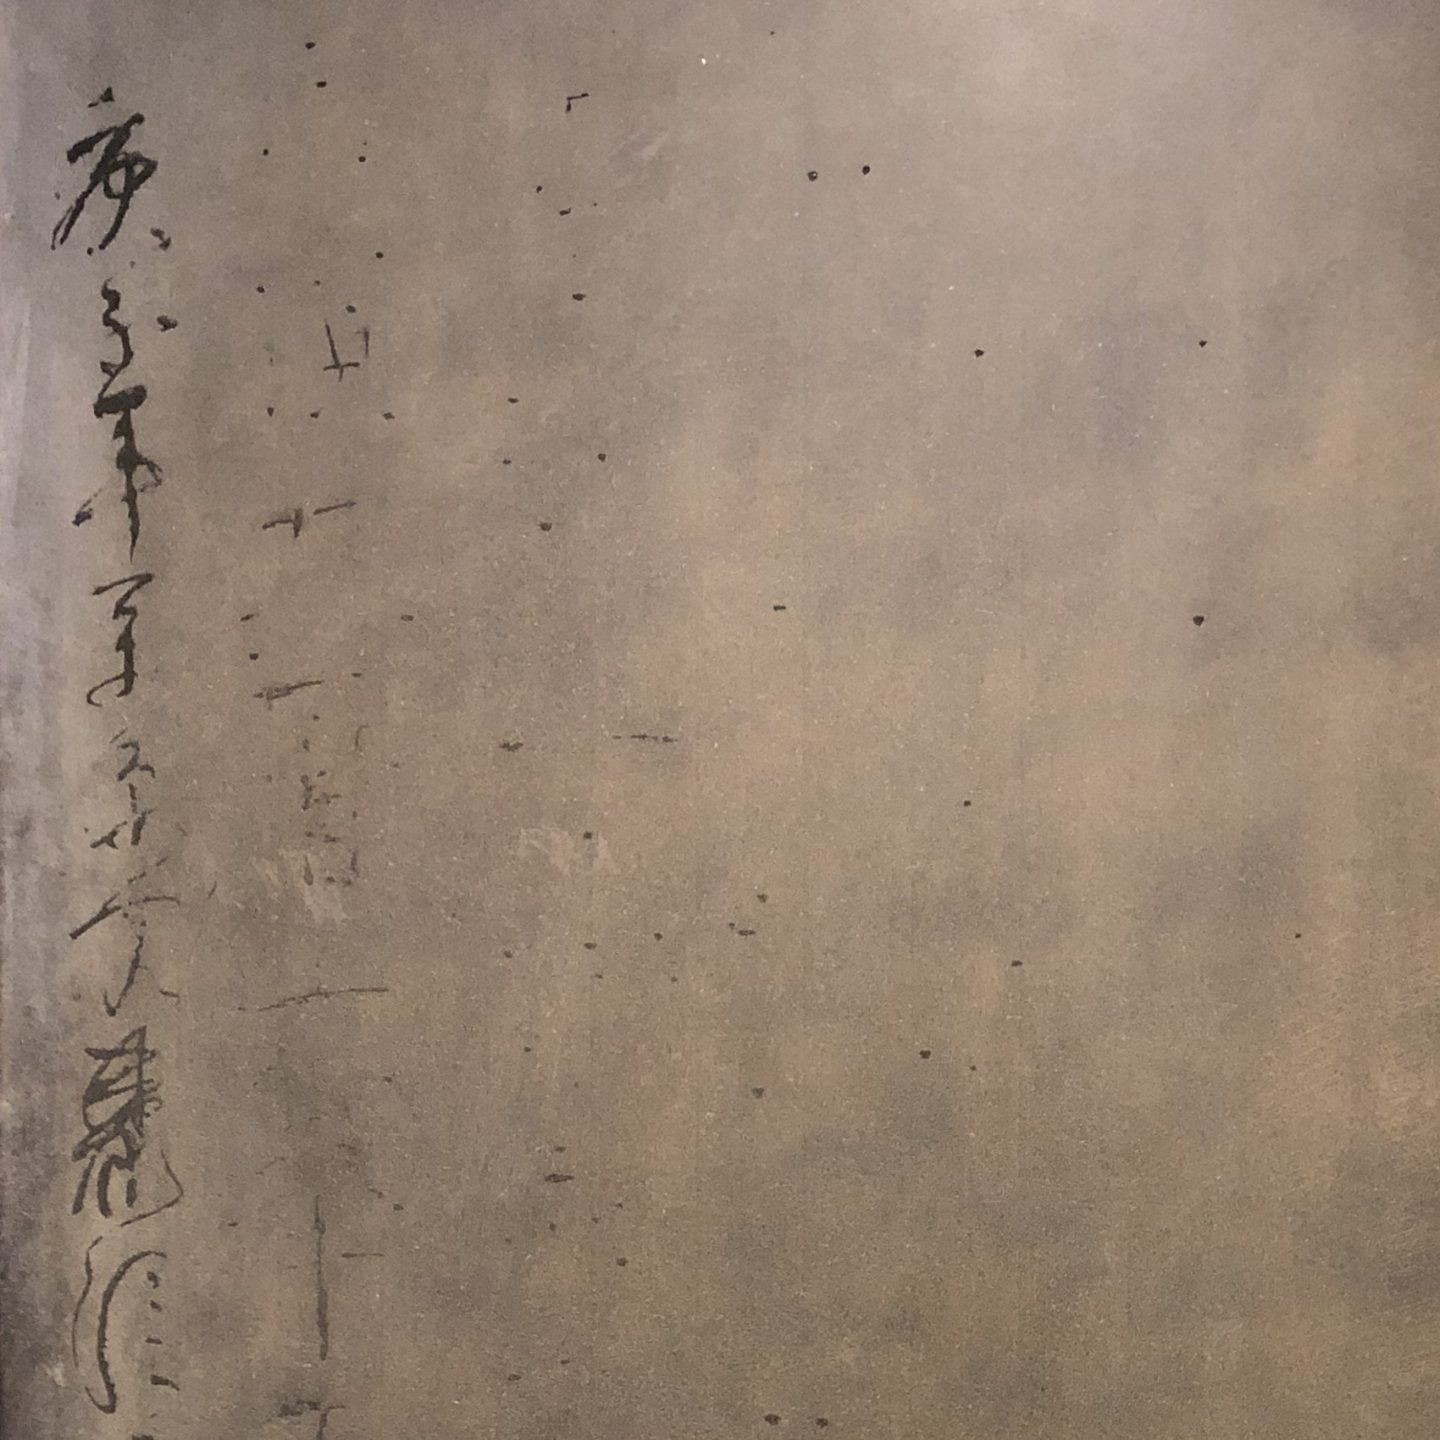 On March 1, 2020, Conghao Tian copied, from memory, An Ode to the Prosperous Great Tang Dynasty upon Song Dong's Traceless Stele. Photo by Noah Hannah.